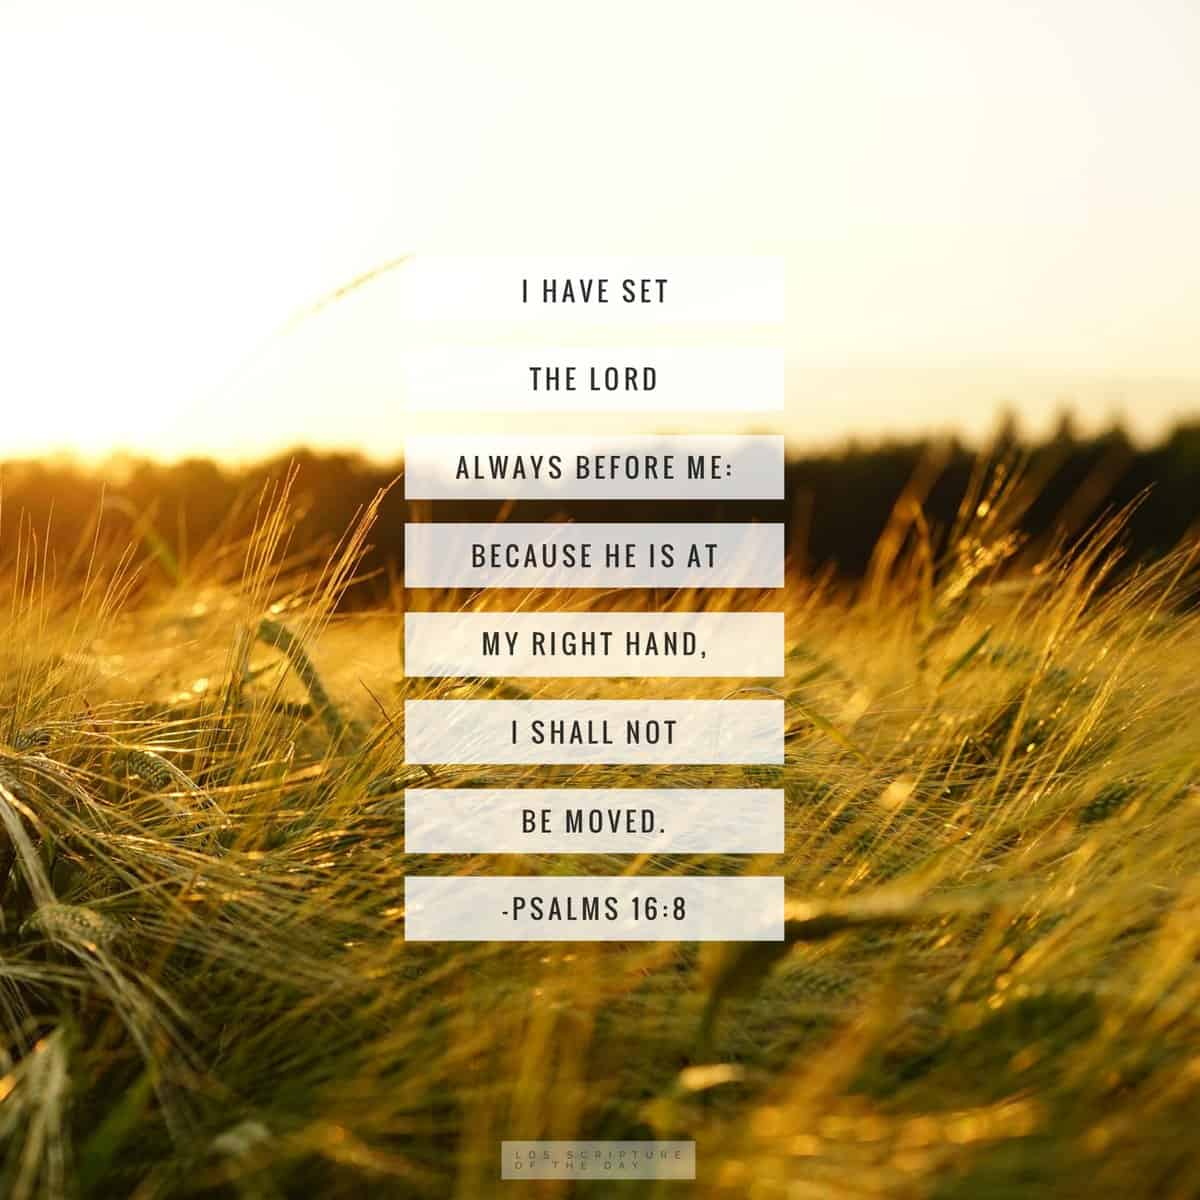 I have set the Lord always before me: because he is at my right hand, I shall not be moved. Psalms 16:8